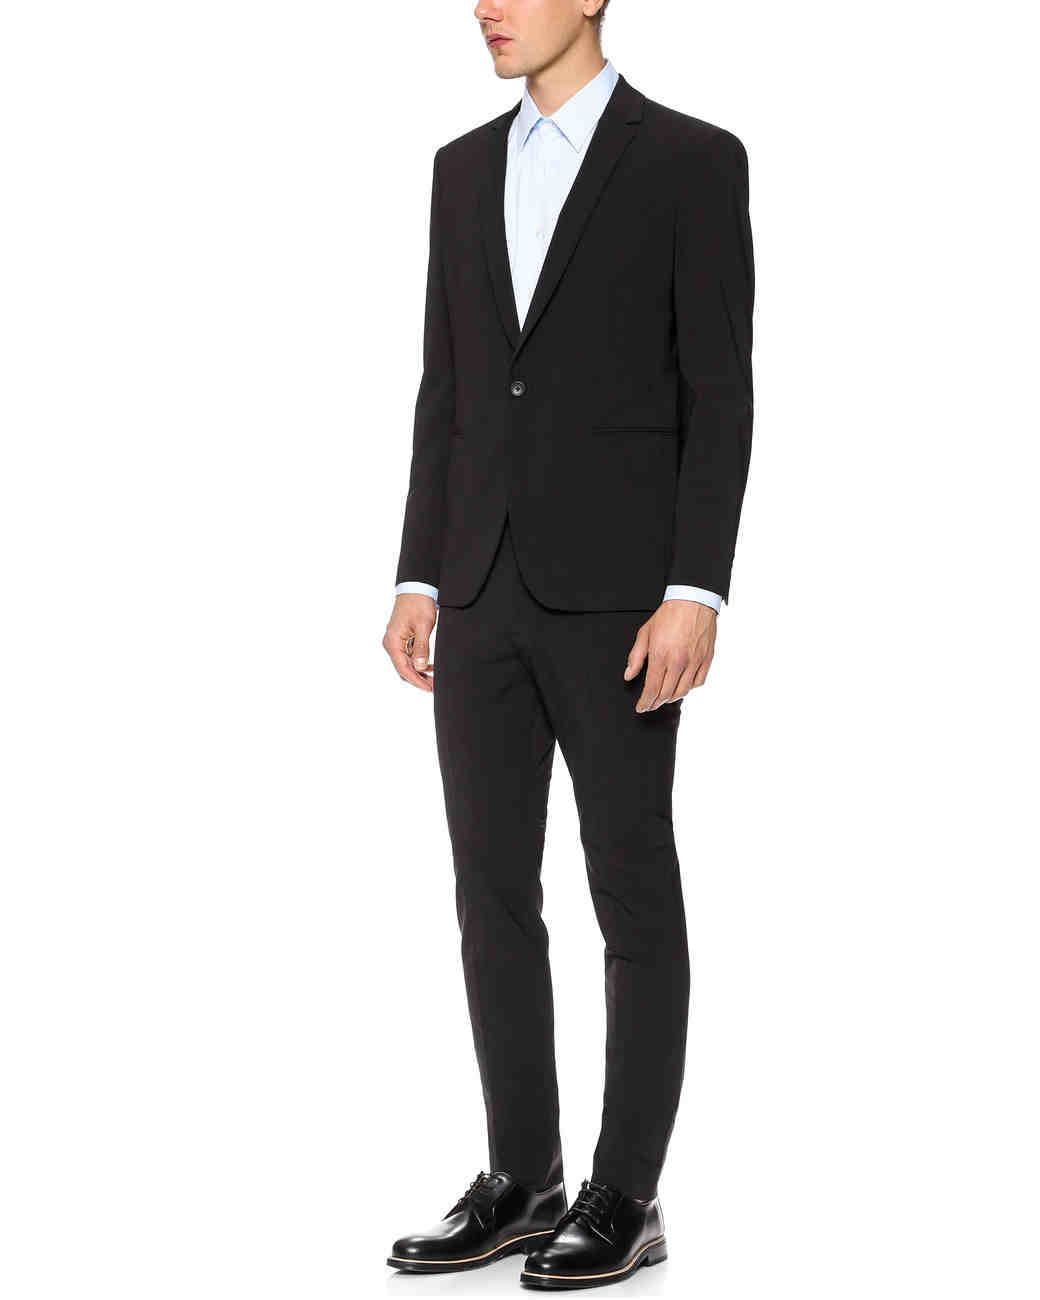 fall-groom-suits-east-dane-theory-stirling-suit-10-14.jpg